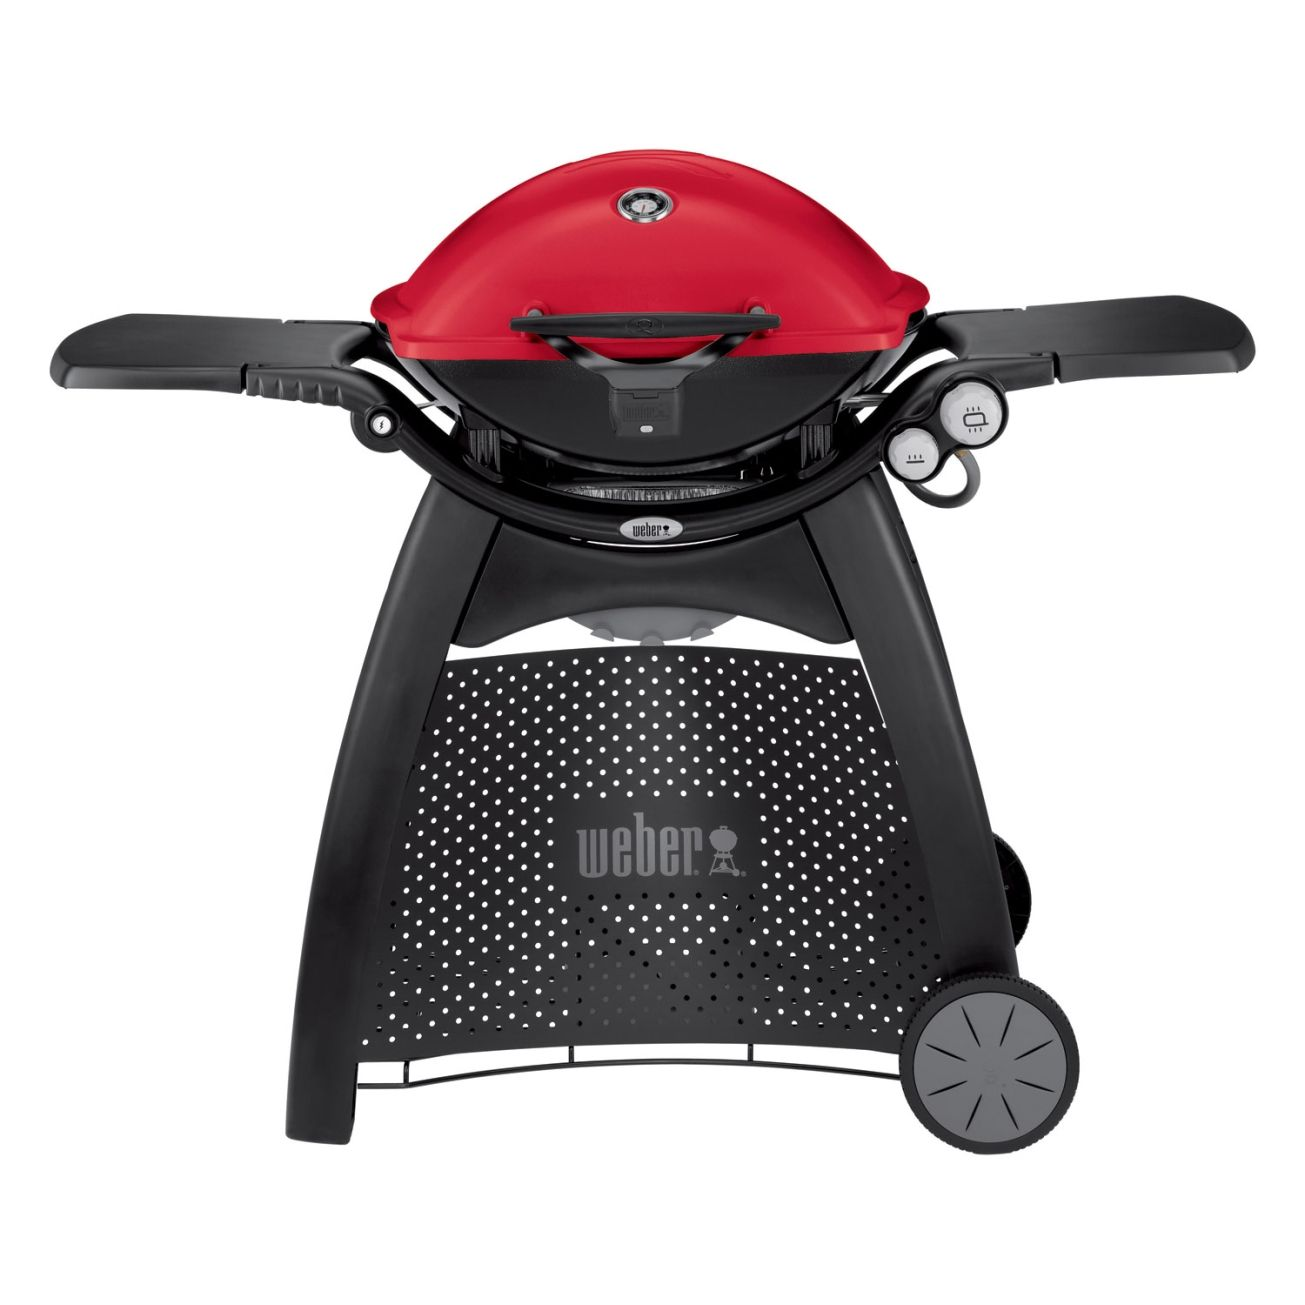 Weber Q3200 Propane Grill (57040001) at Ace Hardware